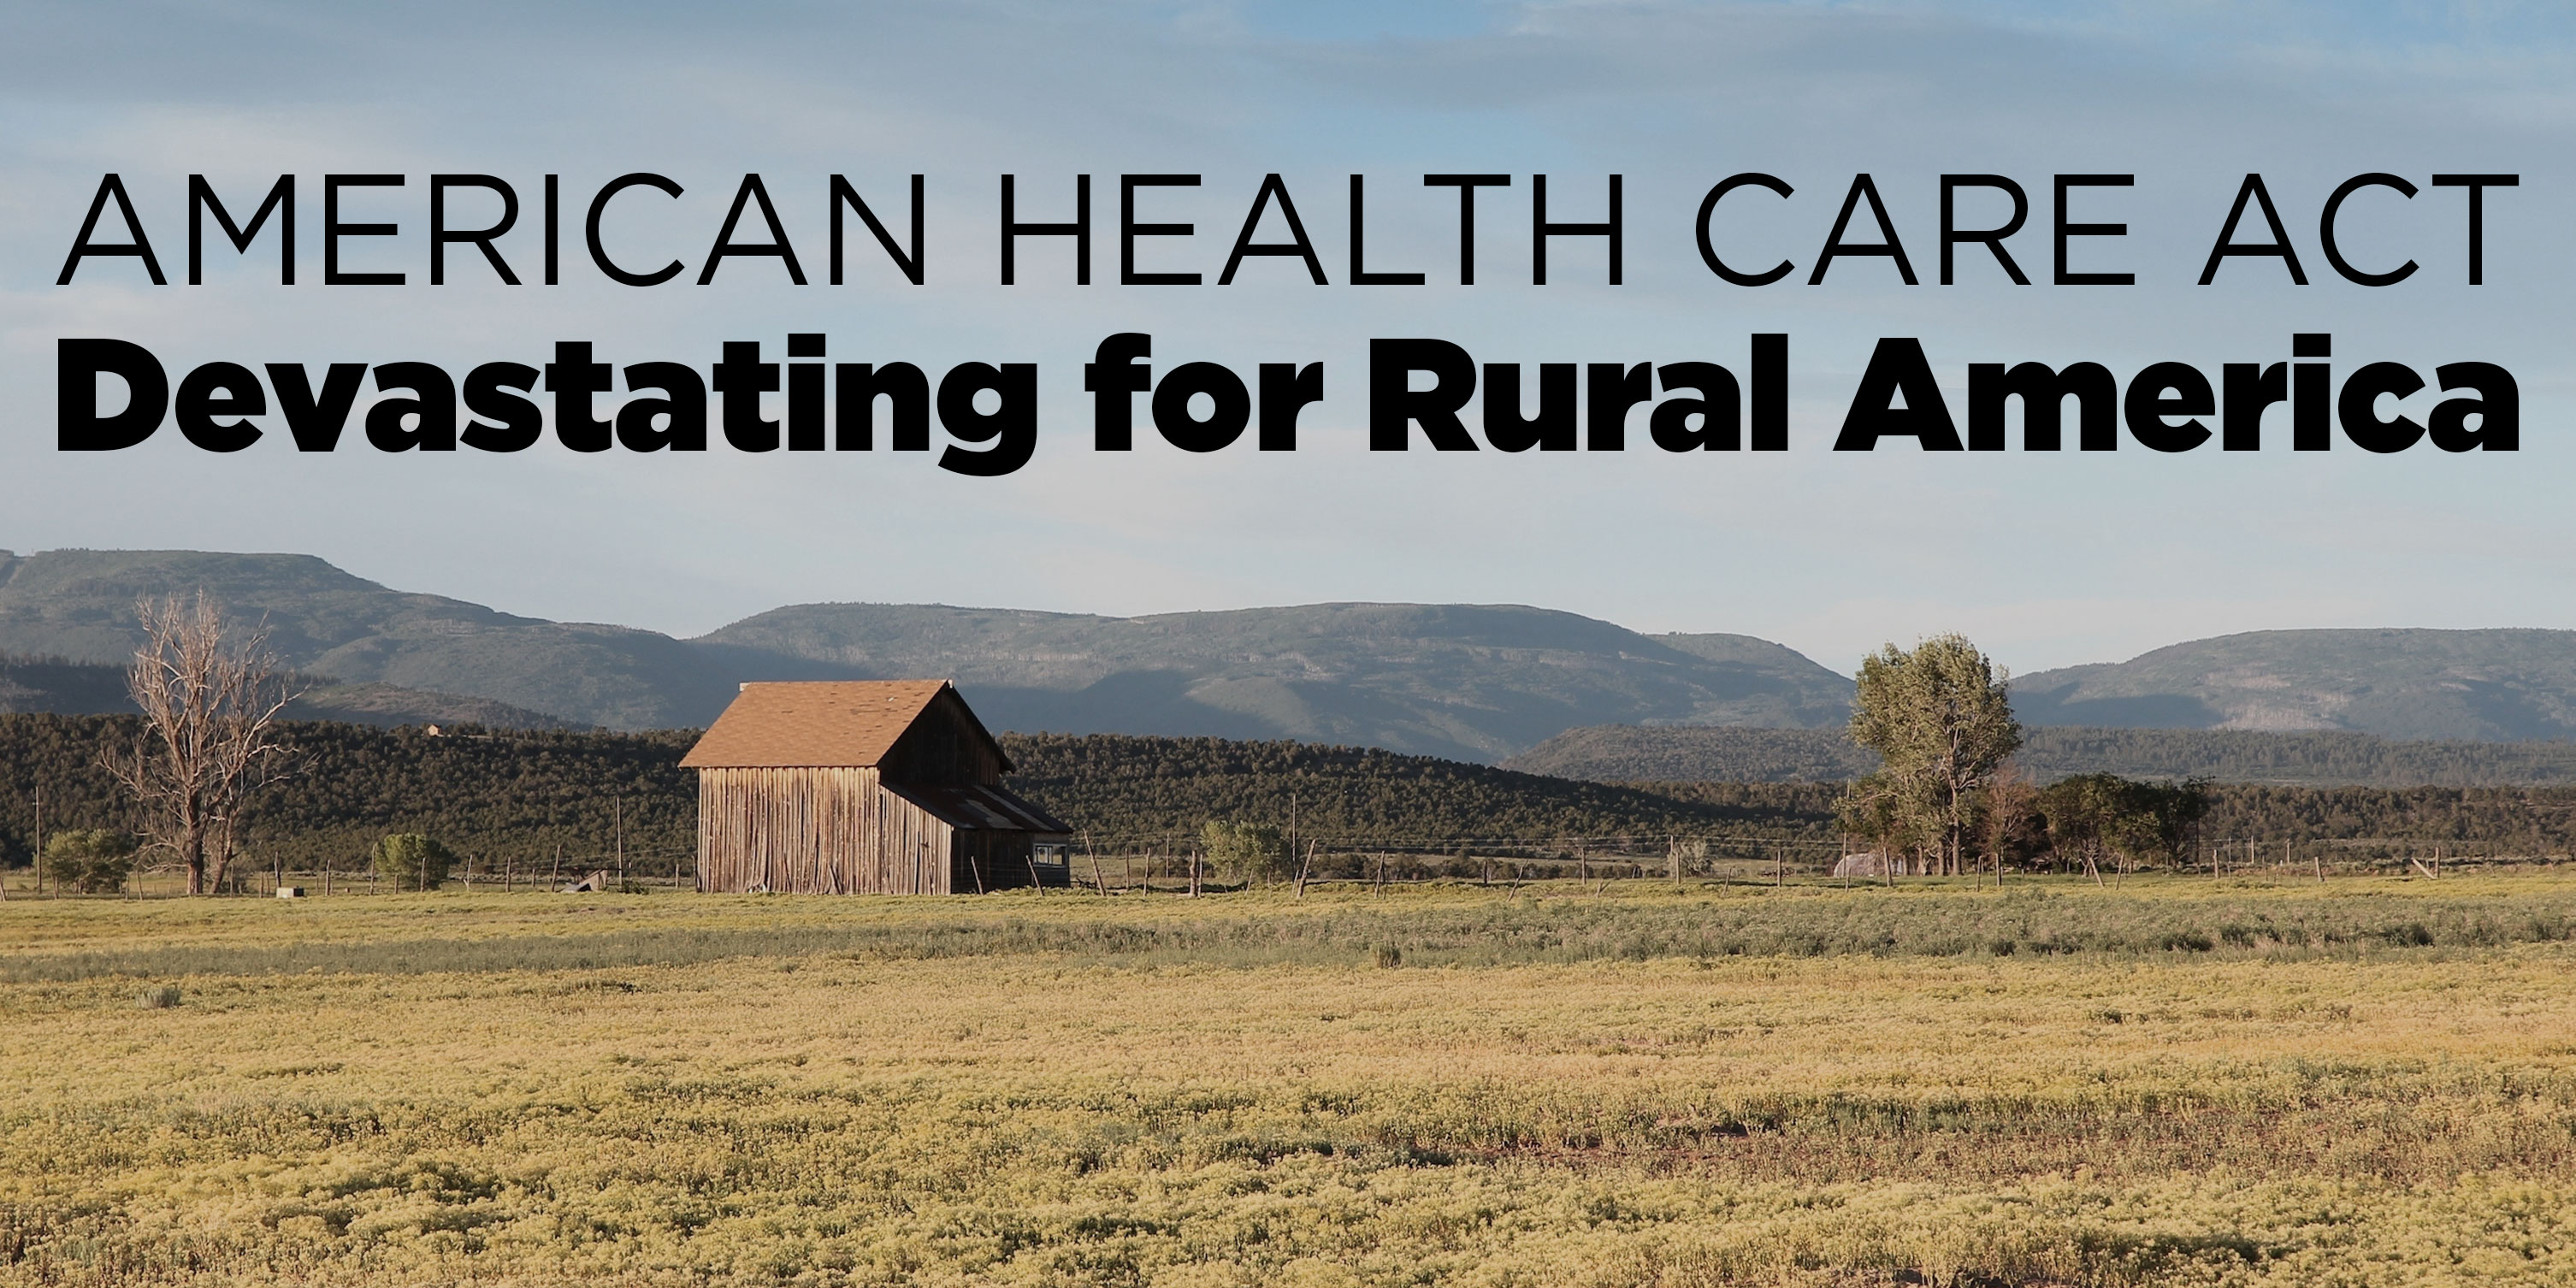 American Health Care Act: Devastating for Rural America